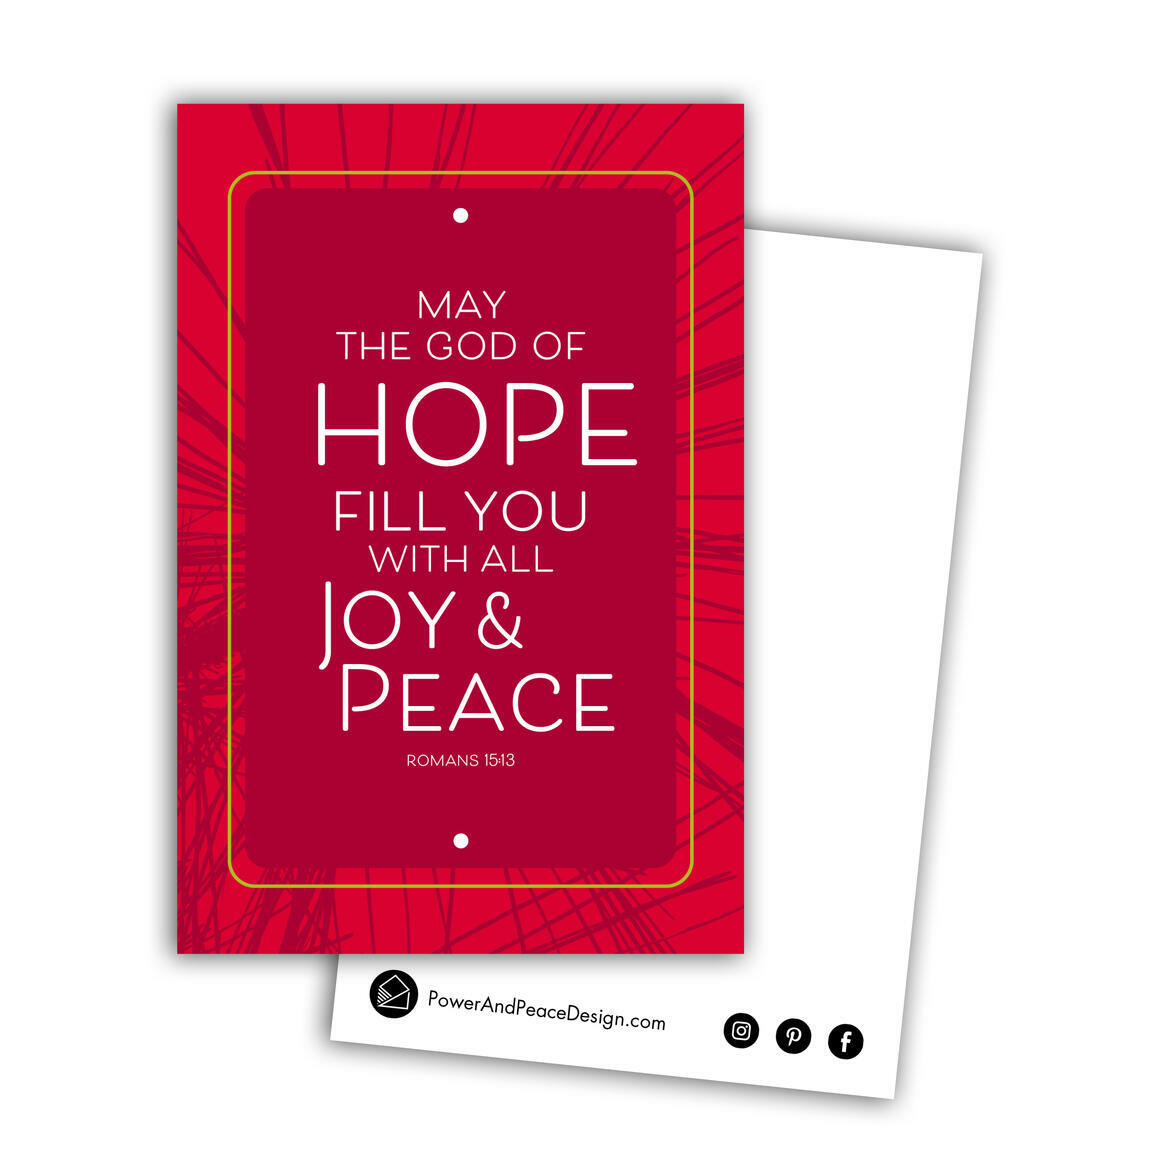 Romans 15:13 postcard in red   Trada Marketplace